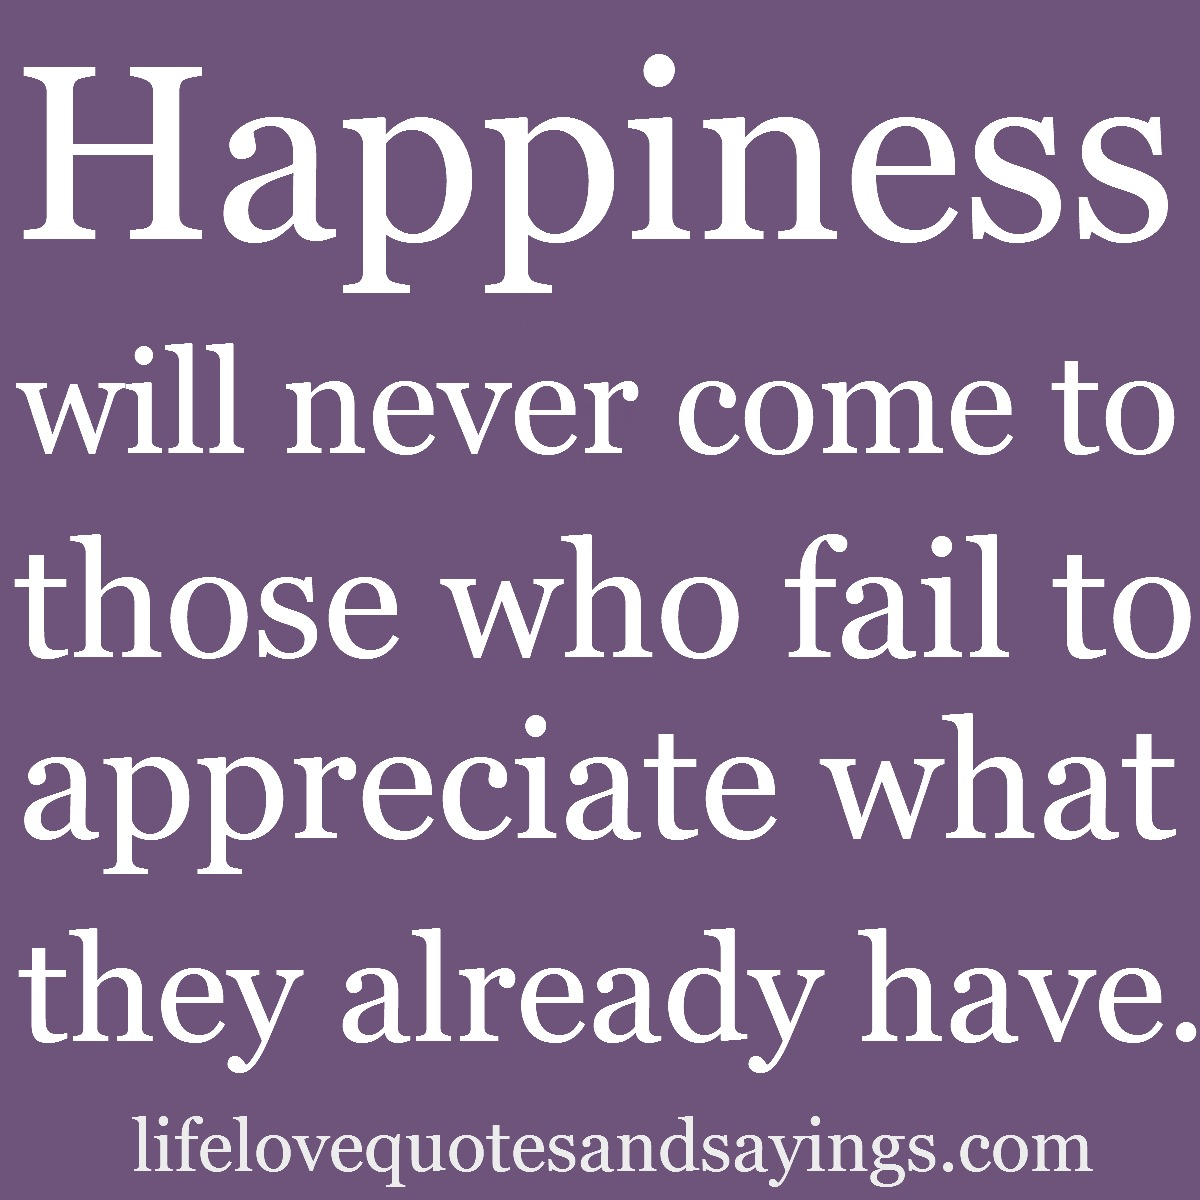 Quotes About Love And Happiness: True Happiness Quotes And Sayings. QuotesGram